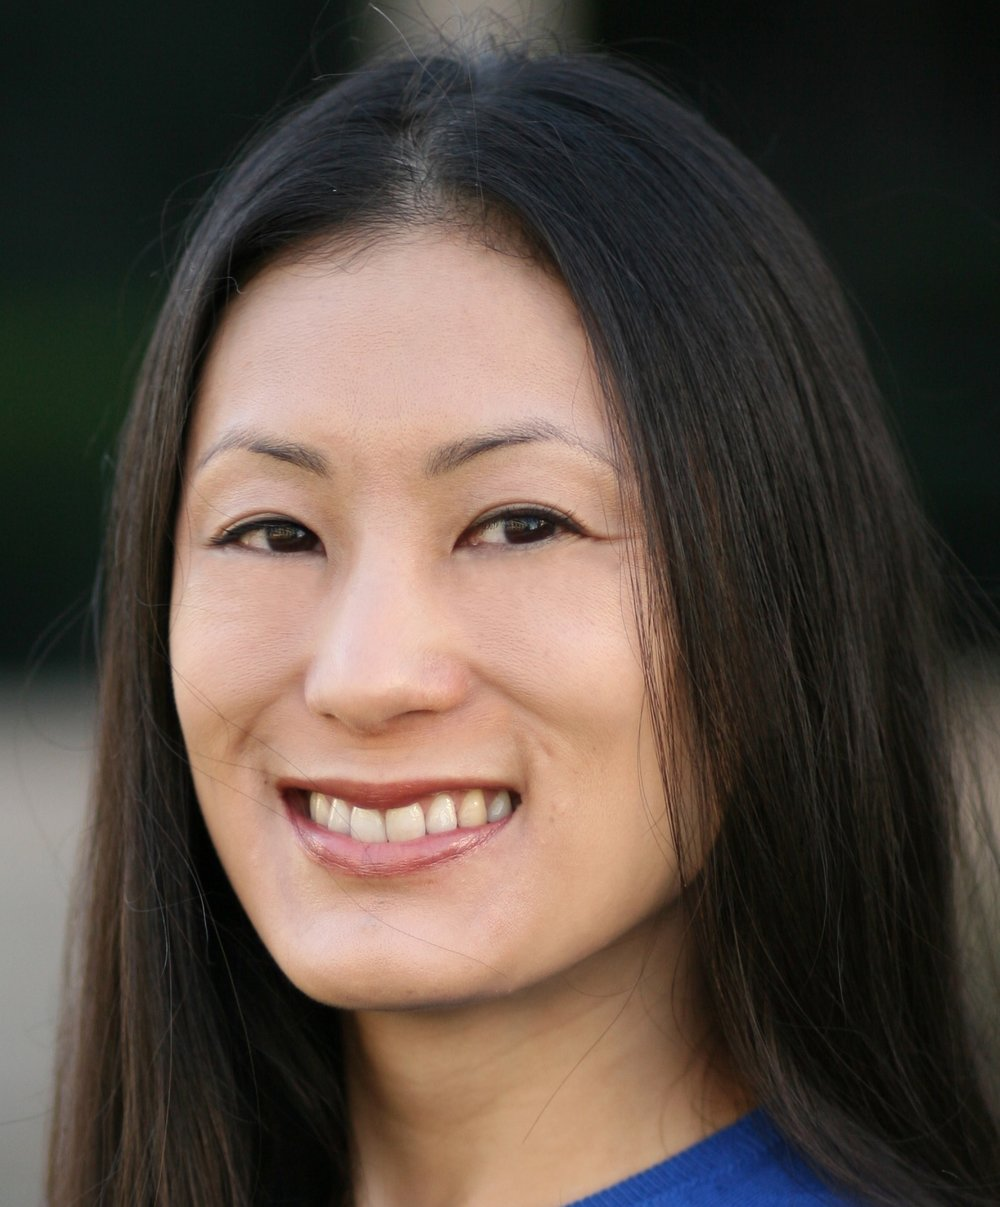 Copy of Julie Ishida (San Francisco, USA)